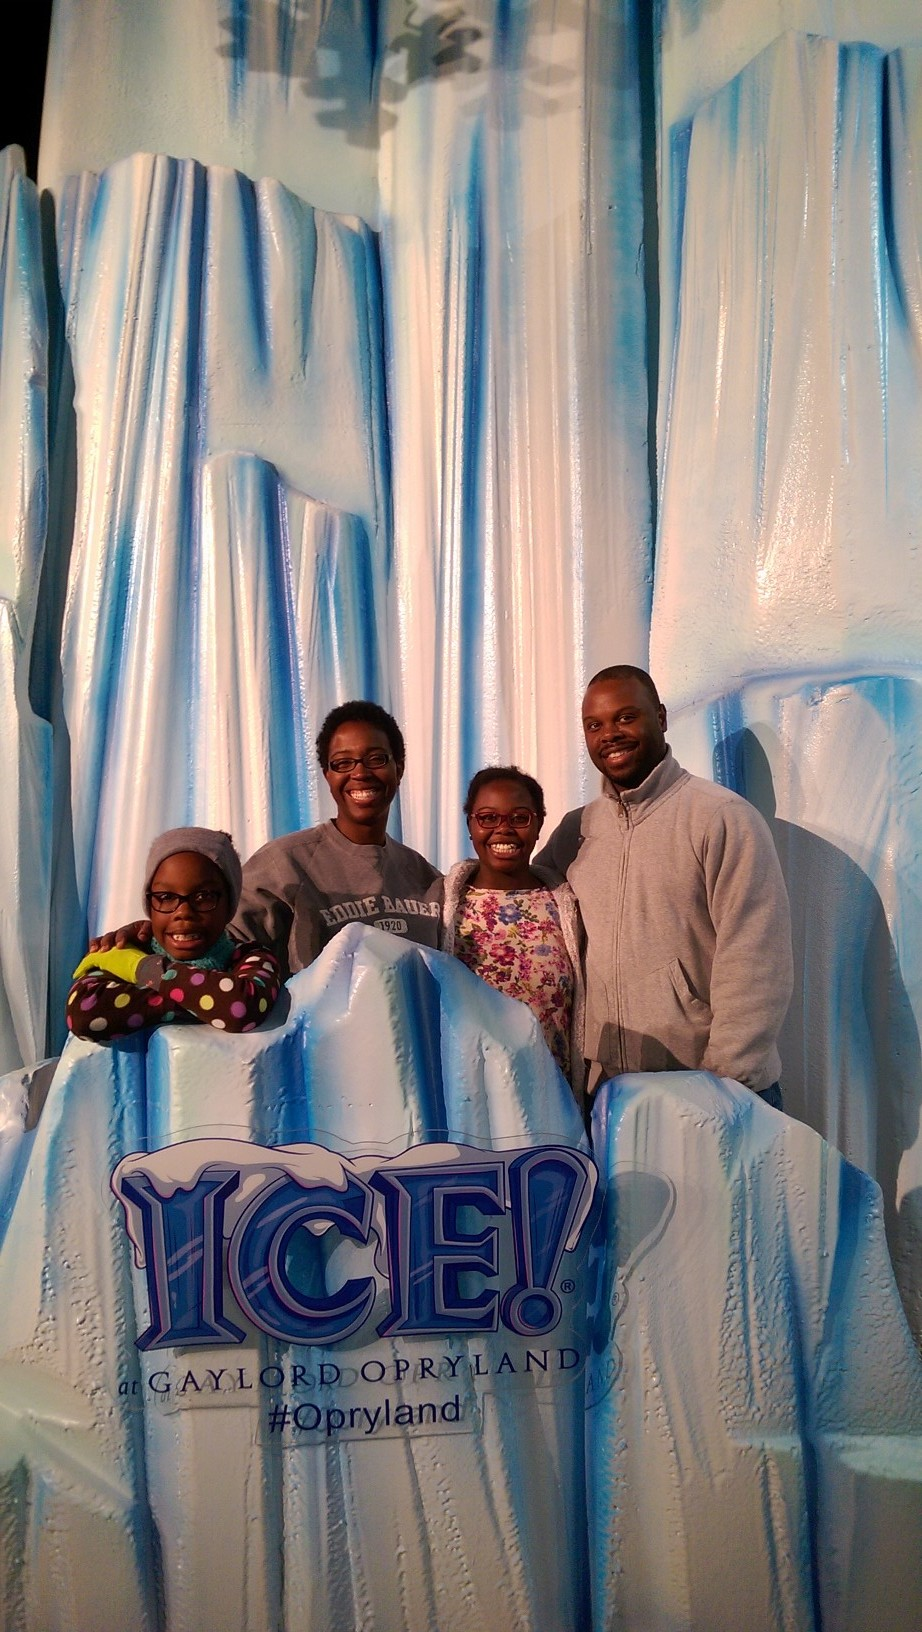 Our family at ICE!